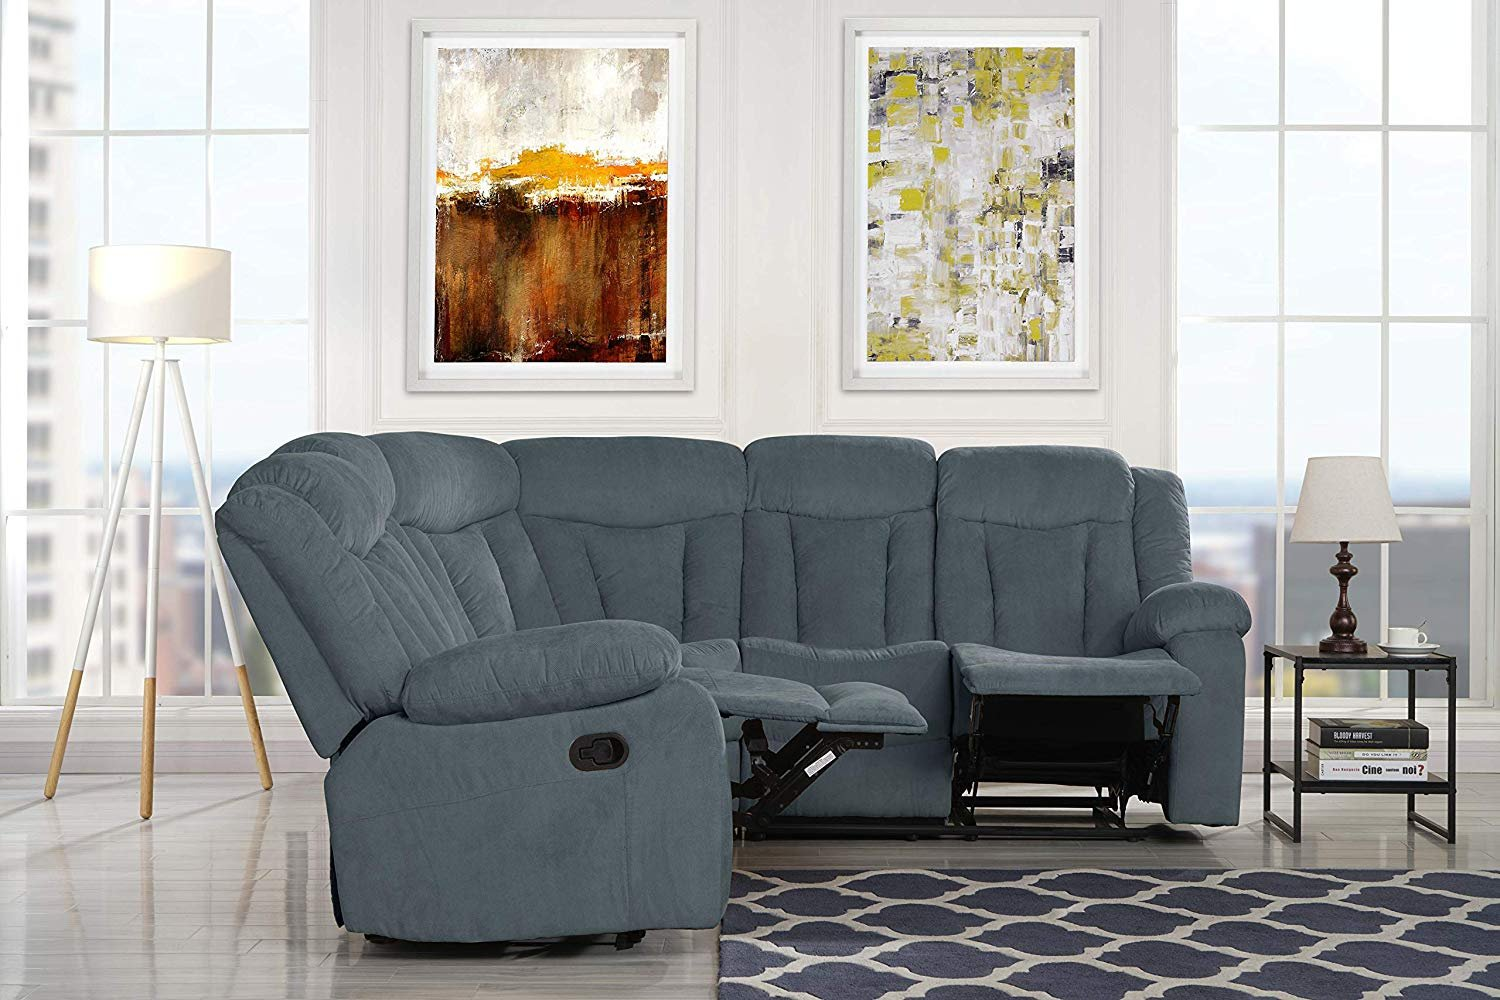 Traditional Living Room Recliner Couch 881 Inch Fabric Sectional